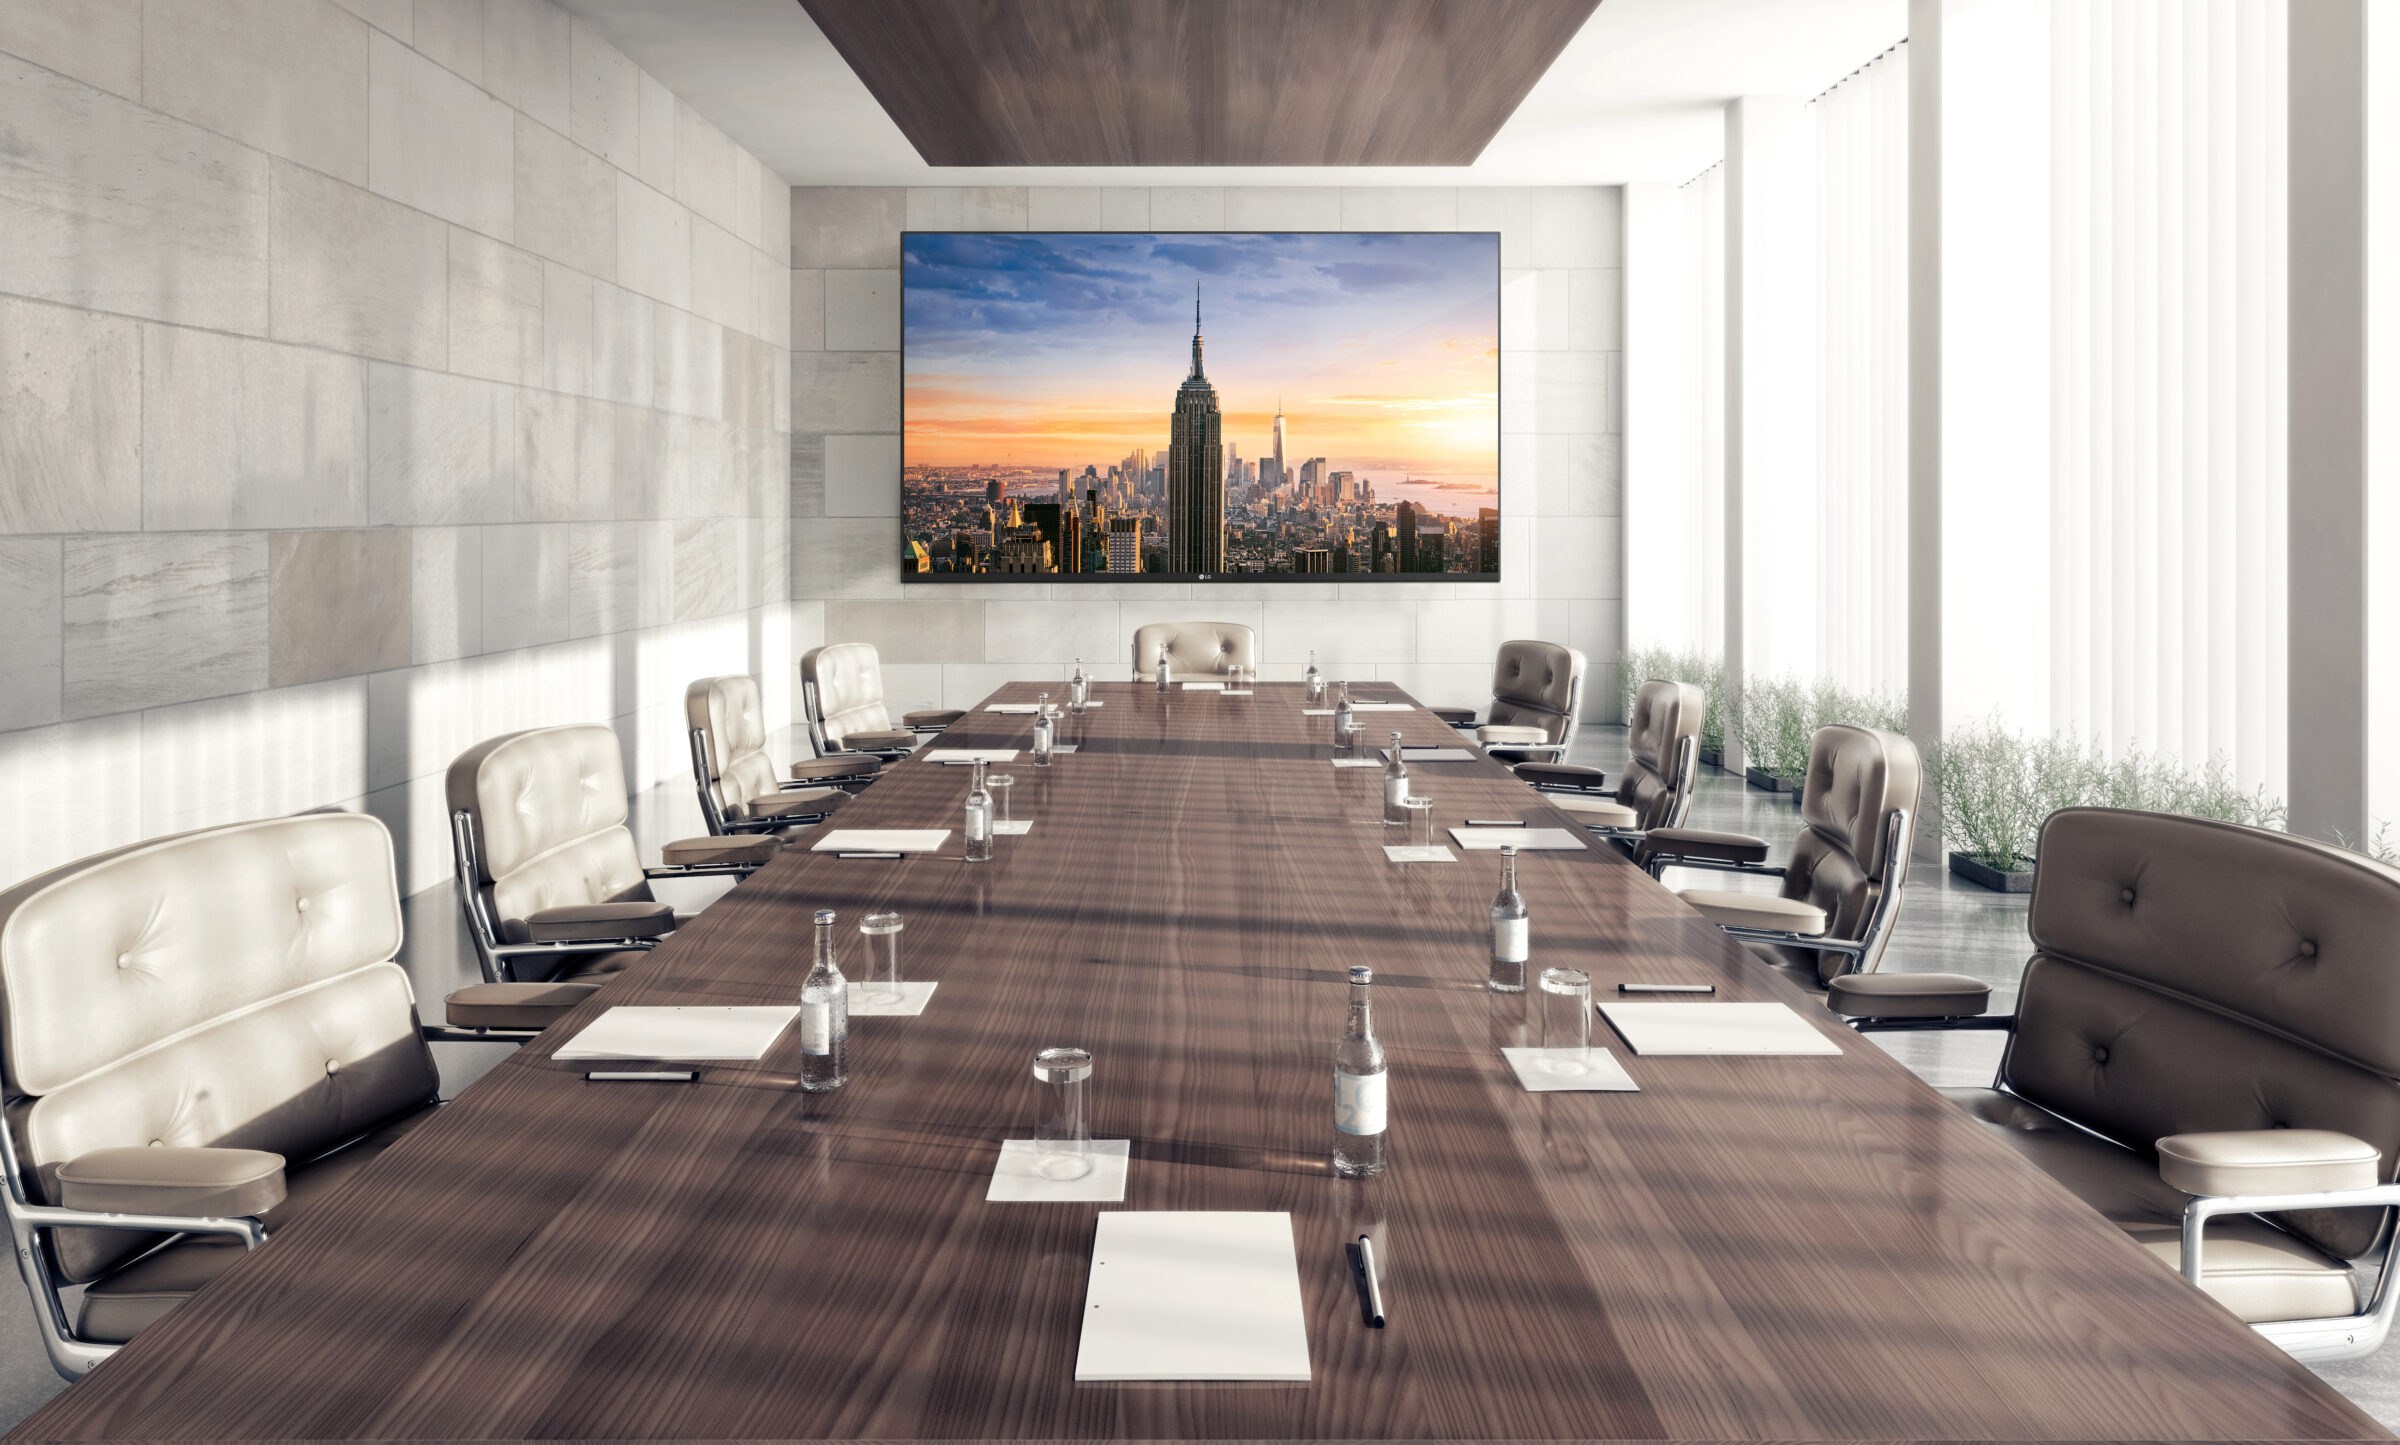 Conference room with LED screens